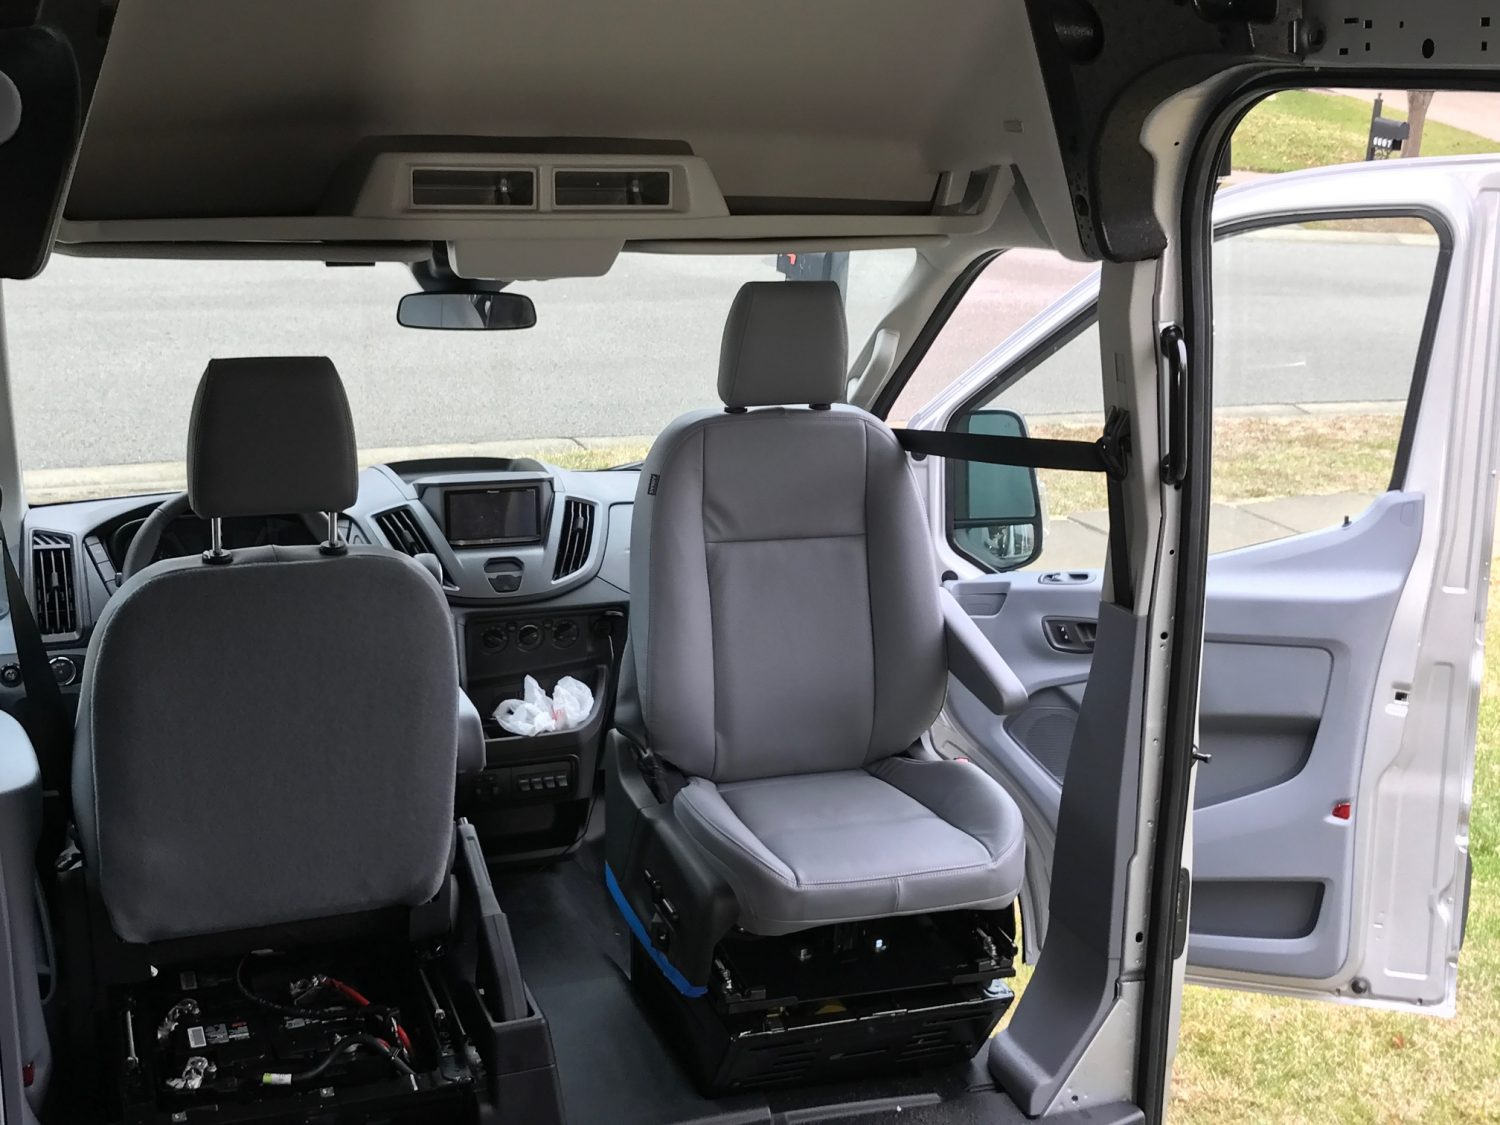 van conversion install seat swivel in ford transit. Black Bedroom Furniture Sets. Home Design Ideas